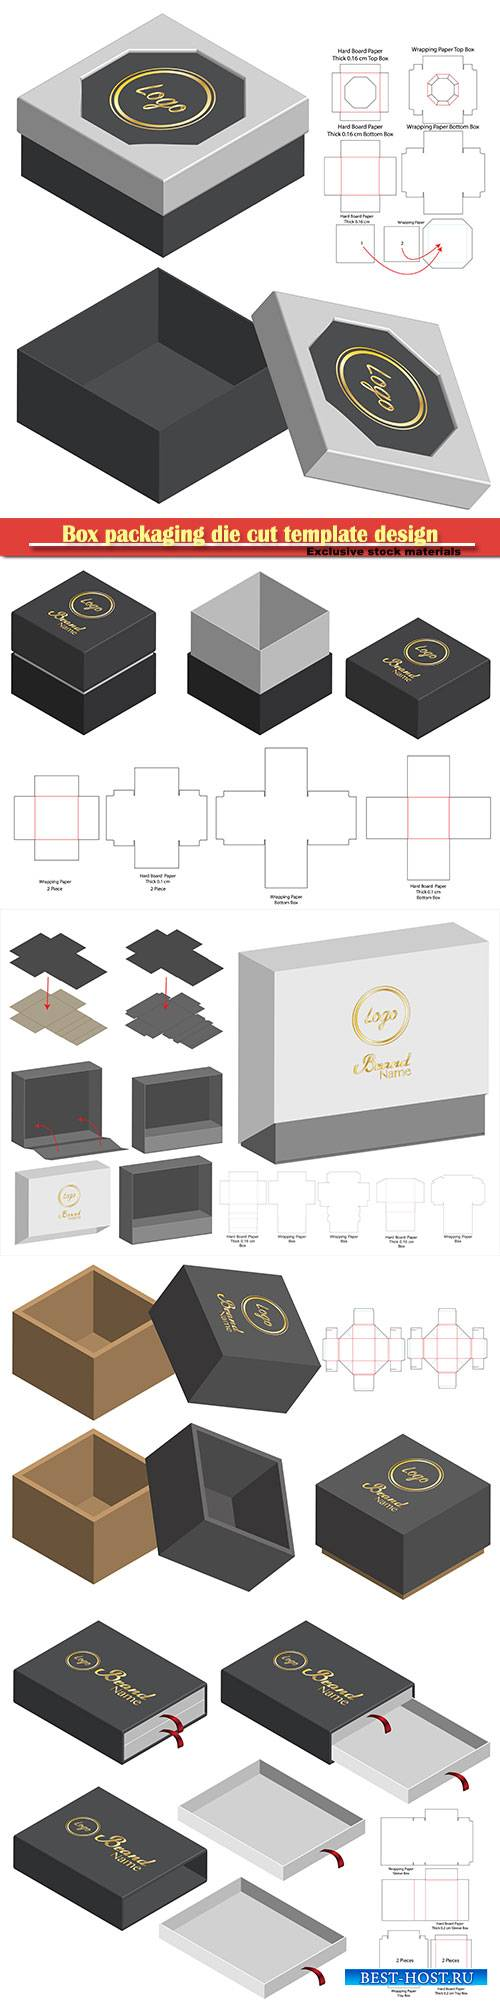 Box packaging die cut template design, 3d mock-up